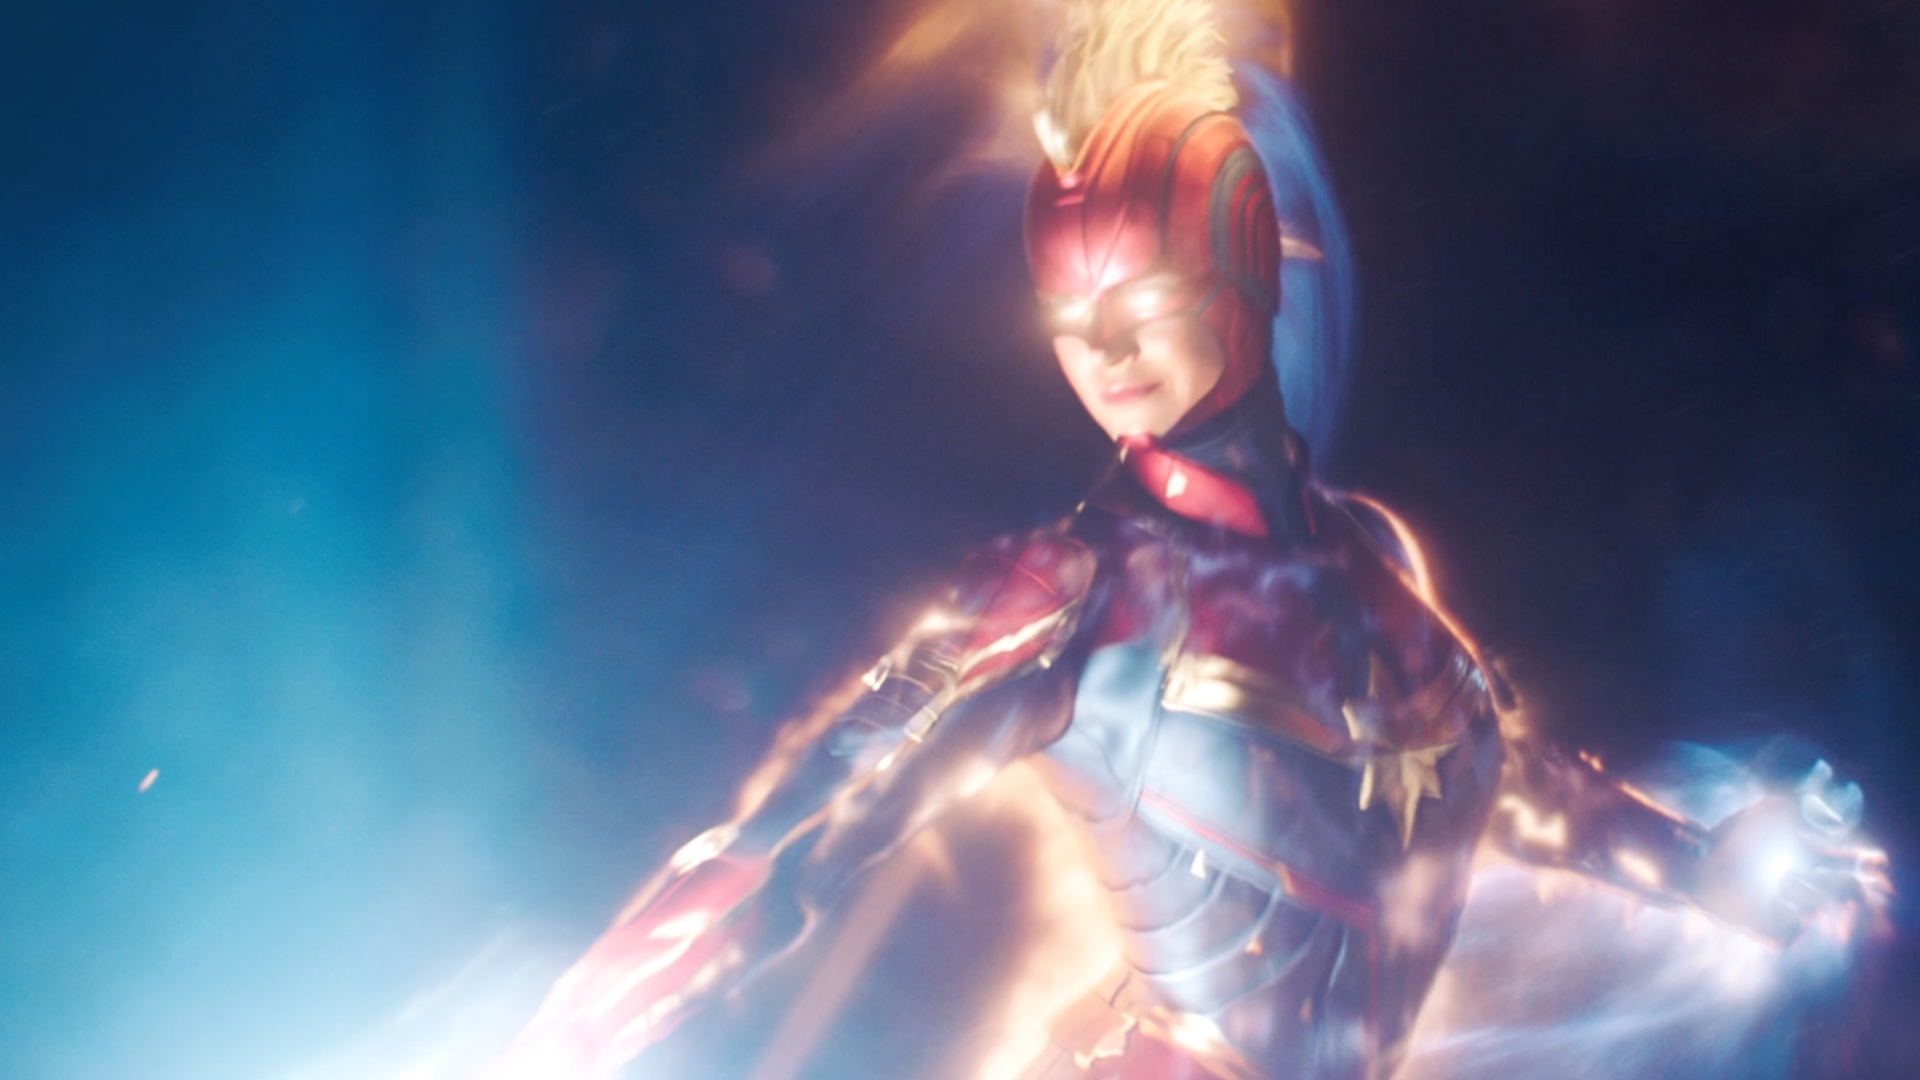 Kevin Feige Explains That Captain Marvel's Weaknesses Will